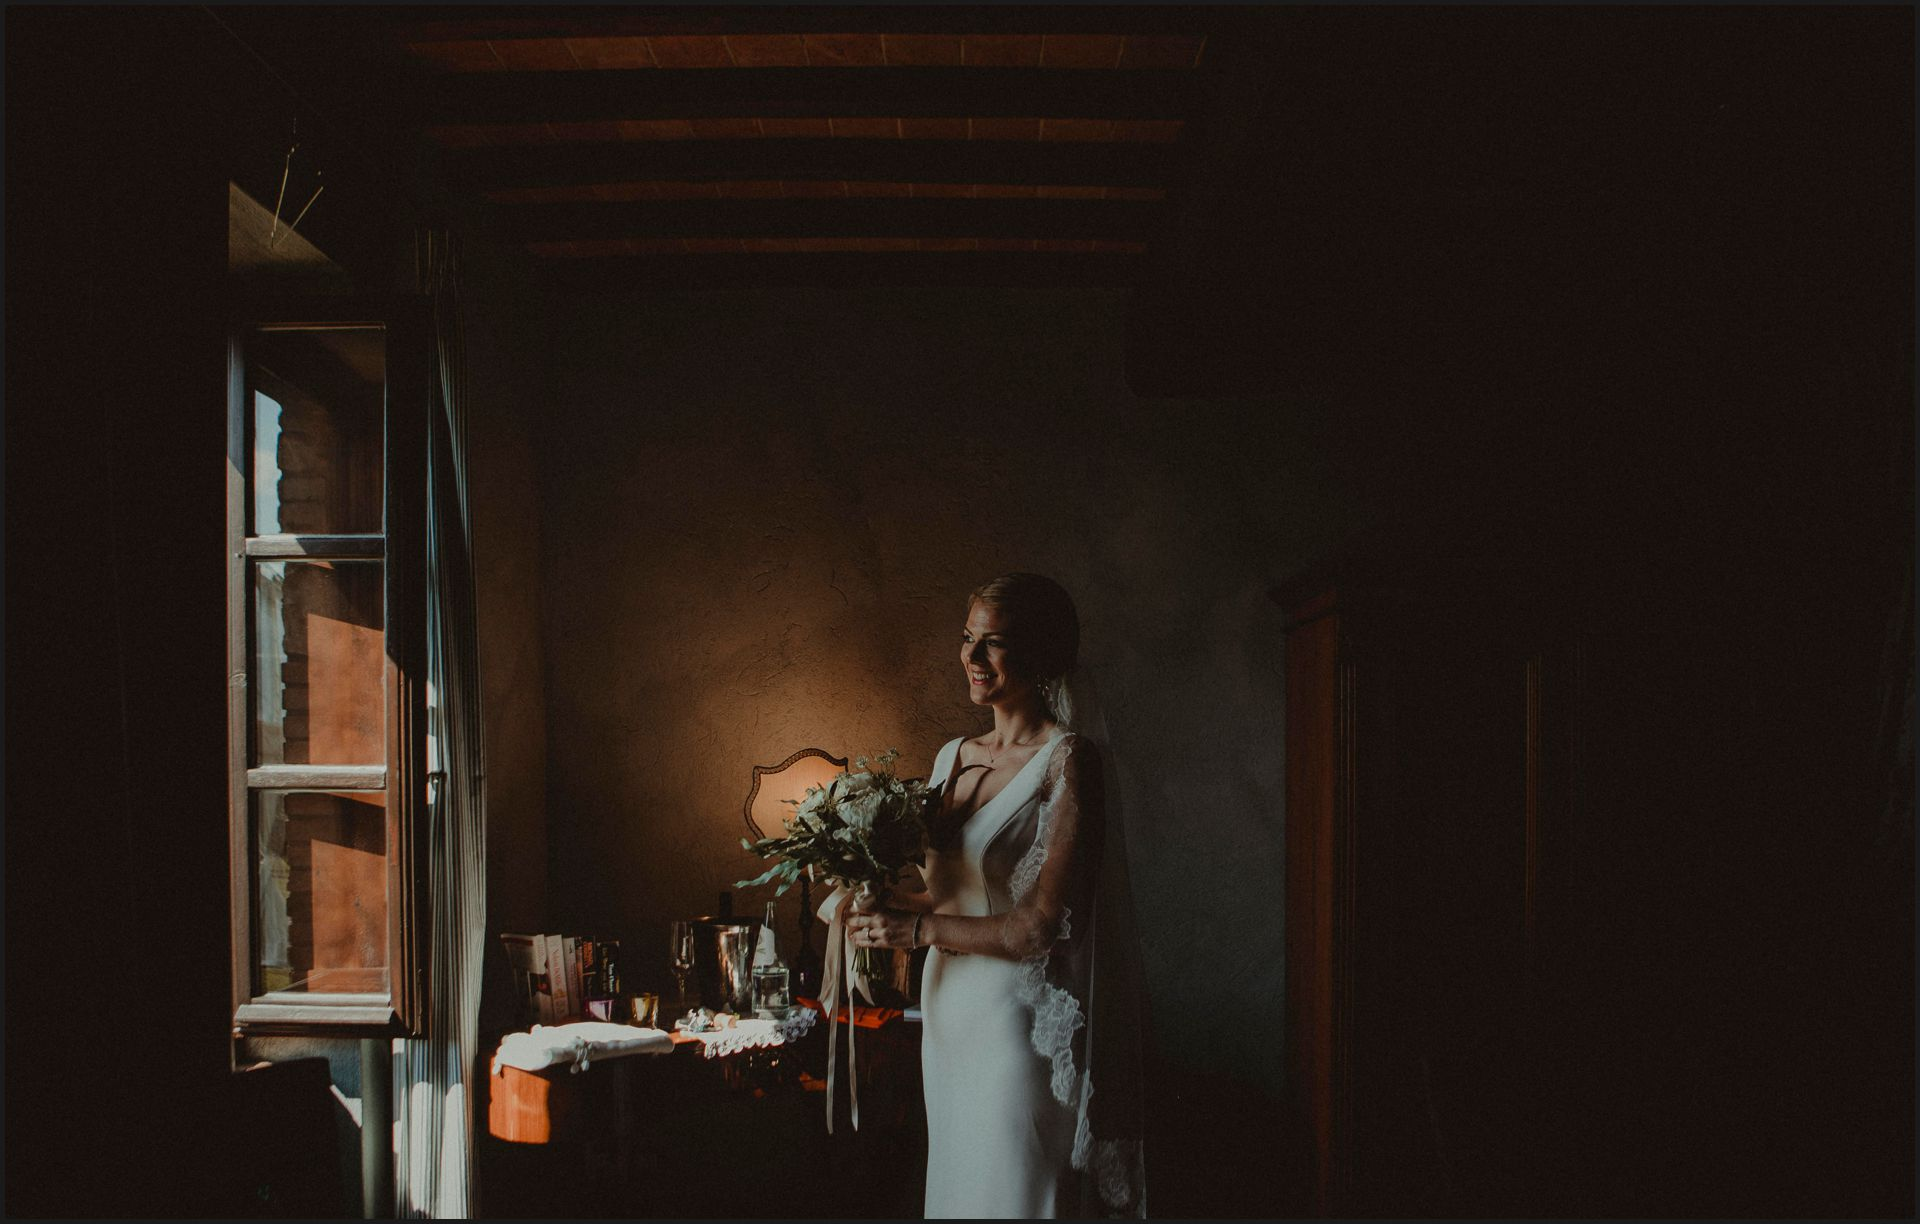 tenuta di canonica, umbria, wedding, bride, preparation, dress